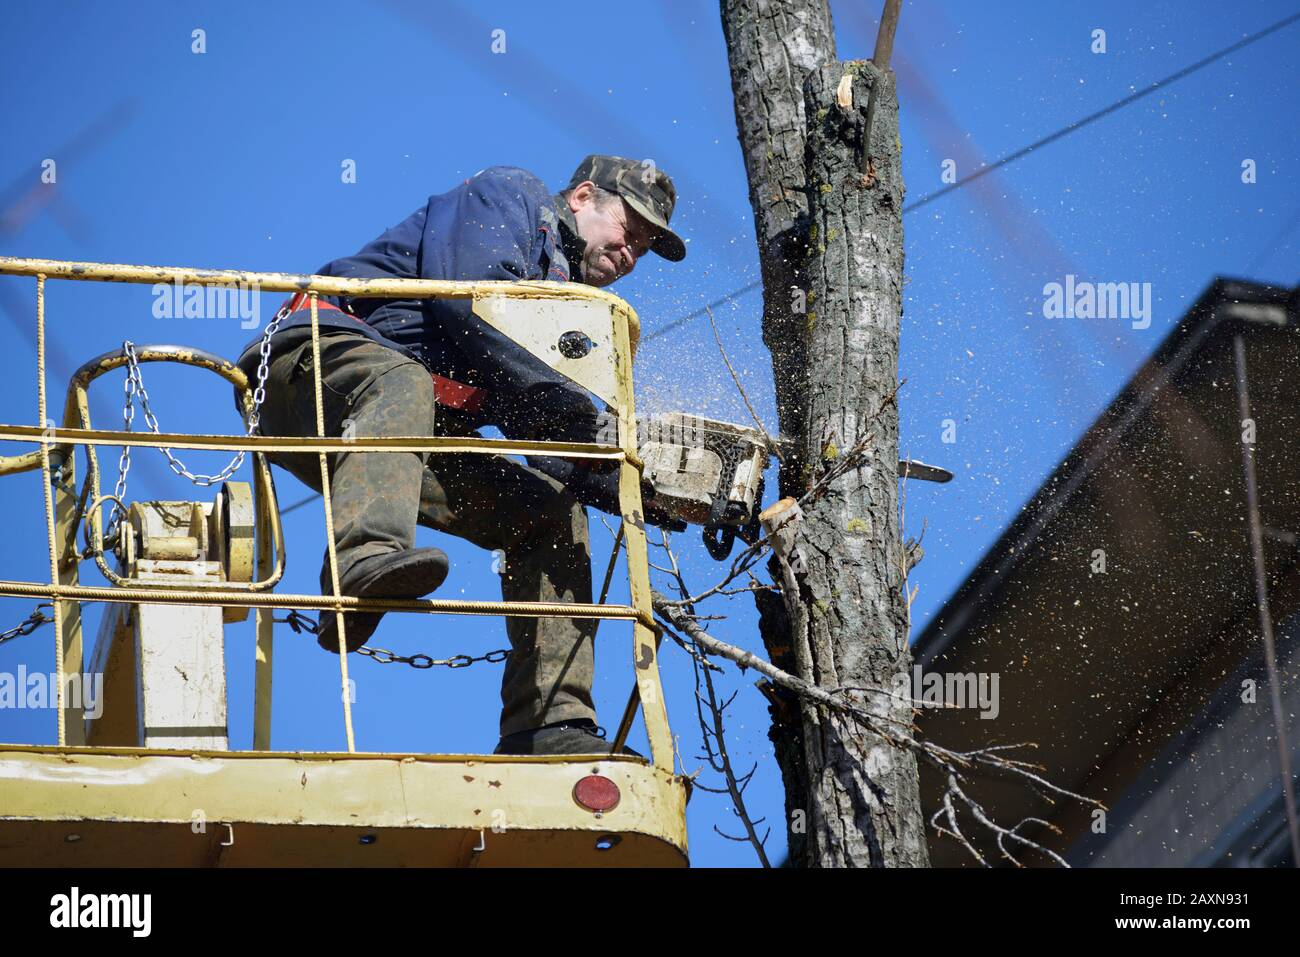 Municipal worker cutting dead standing tree with chainsaw using truck-mounted lift. February 11, 2020. Kiev, Ukraine Stock Photo